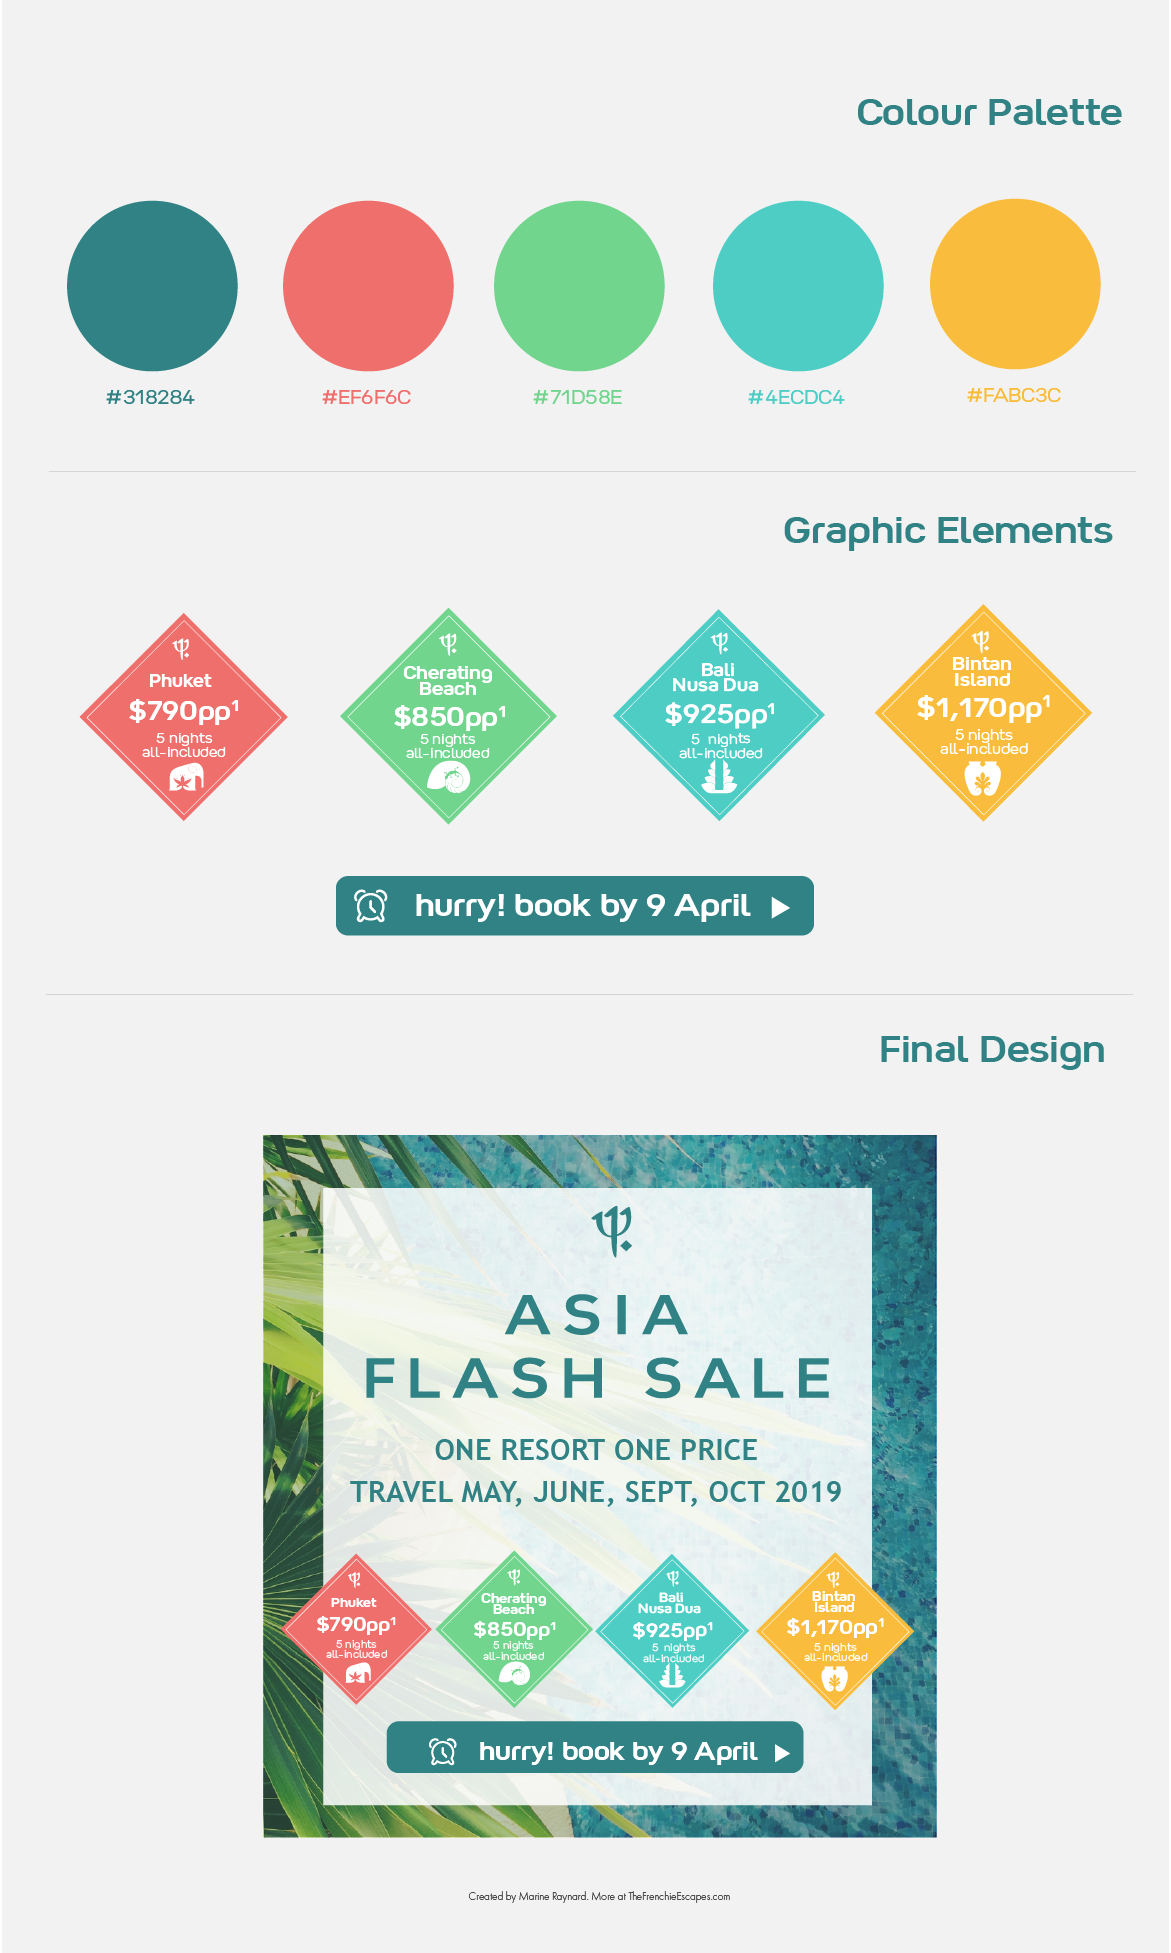 Asia_Brand-01.png